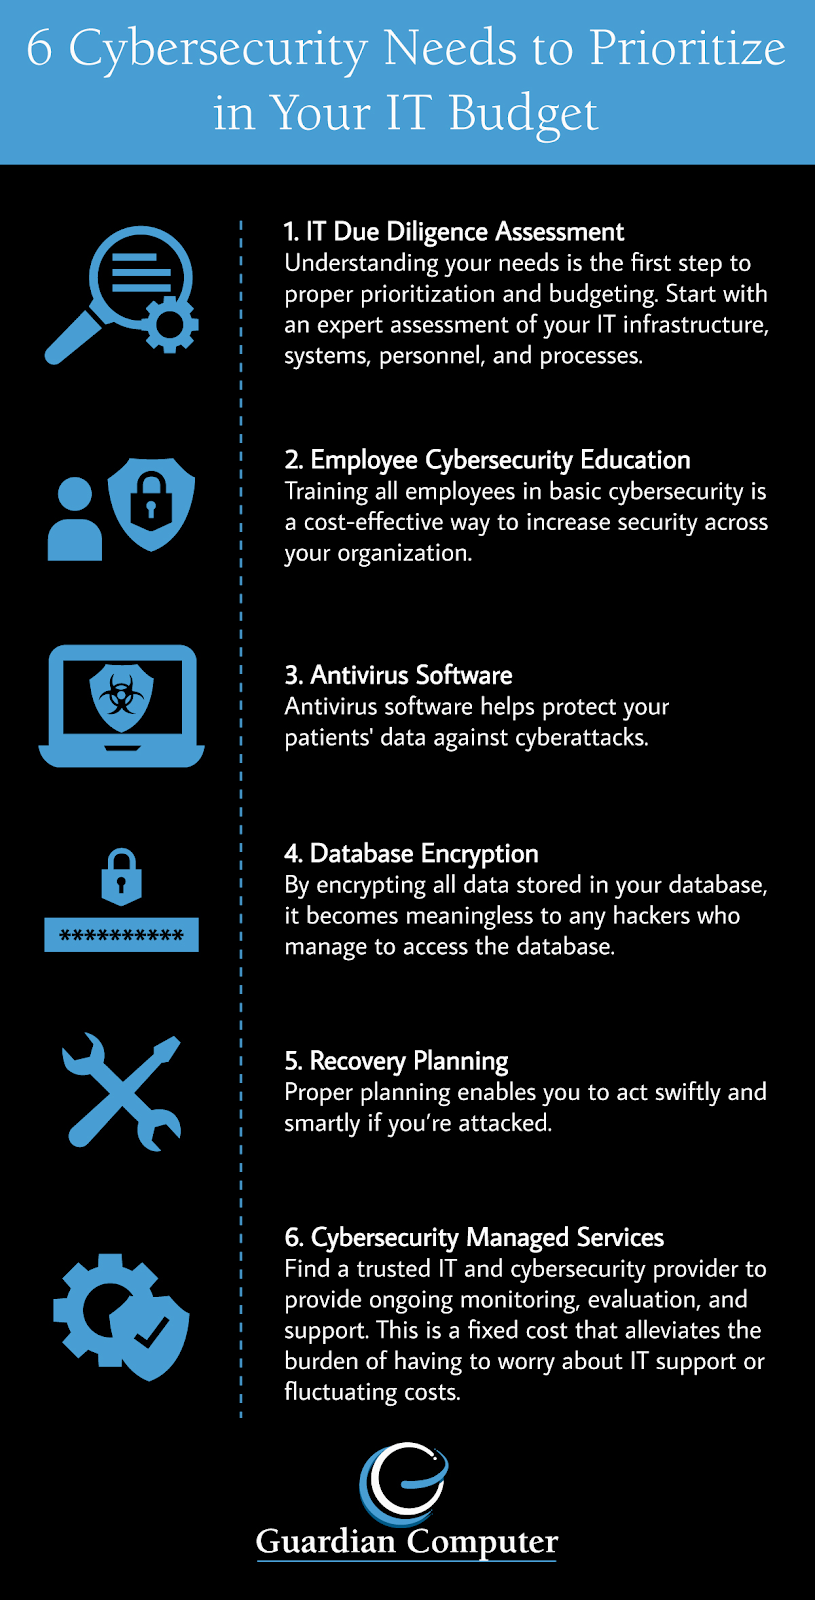 When considering IT services for doctors, prioritize these 6 cybersecurity needs in your budget, outlined here in our infographic and later in our blog post.